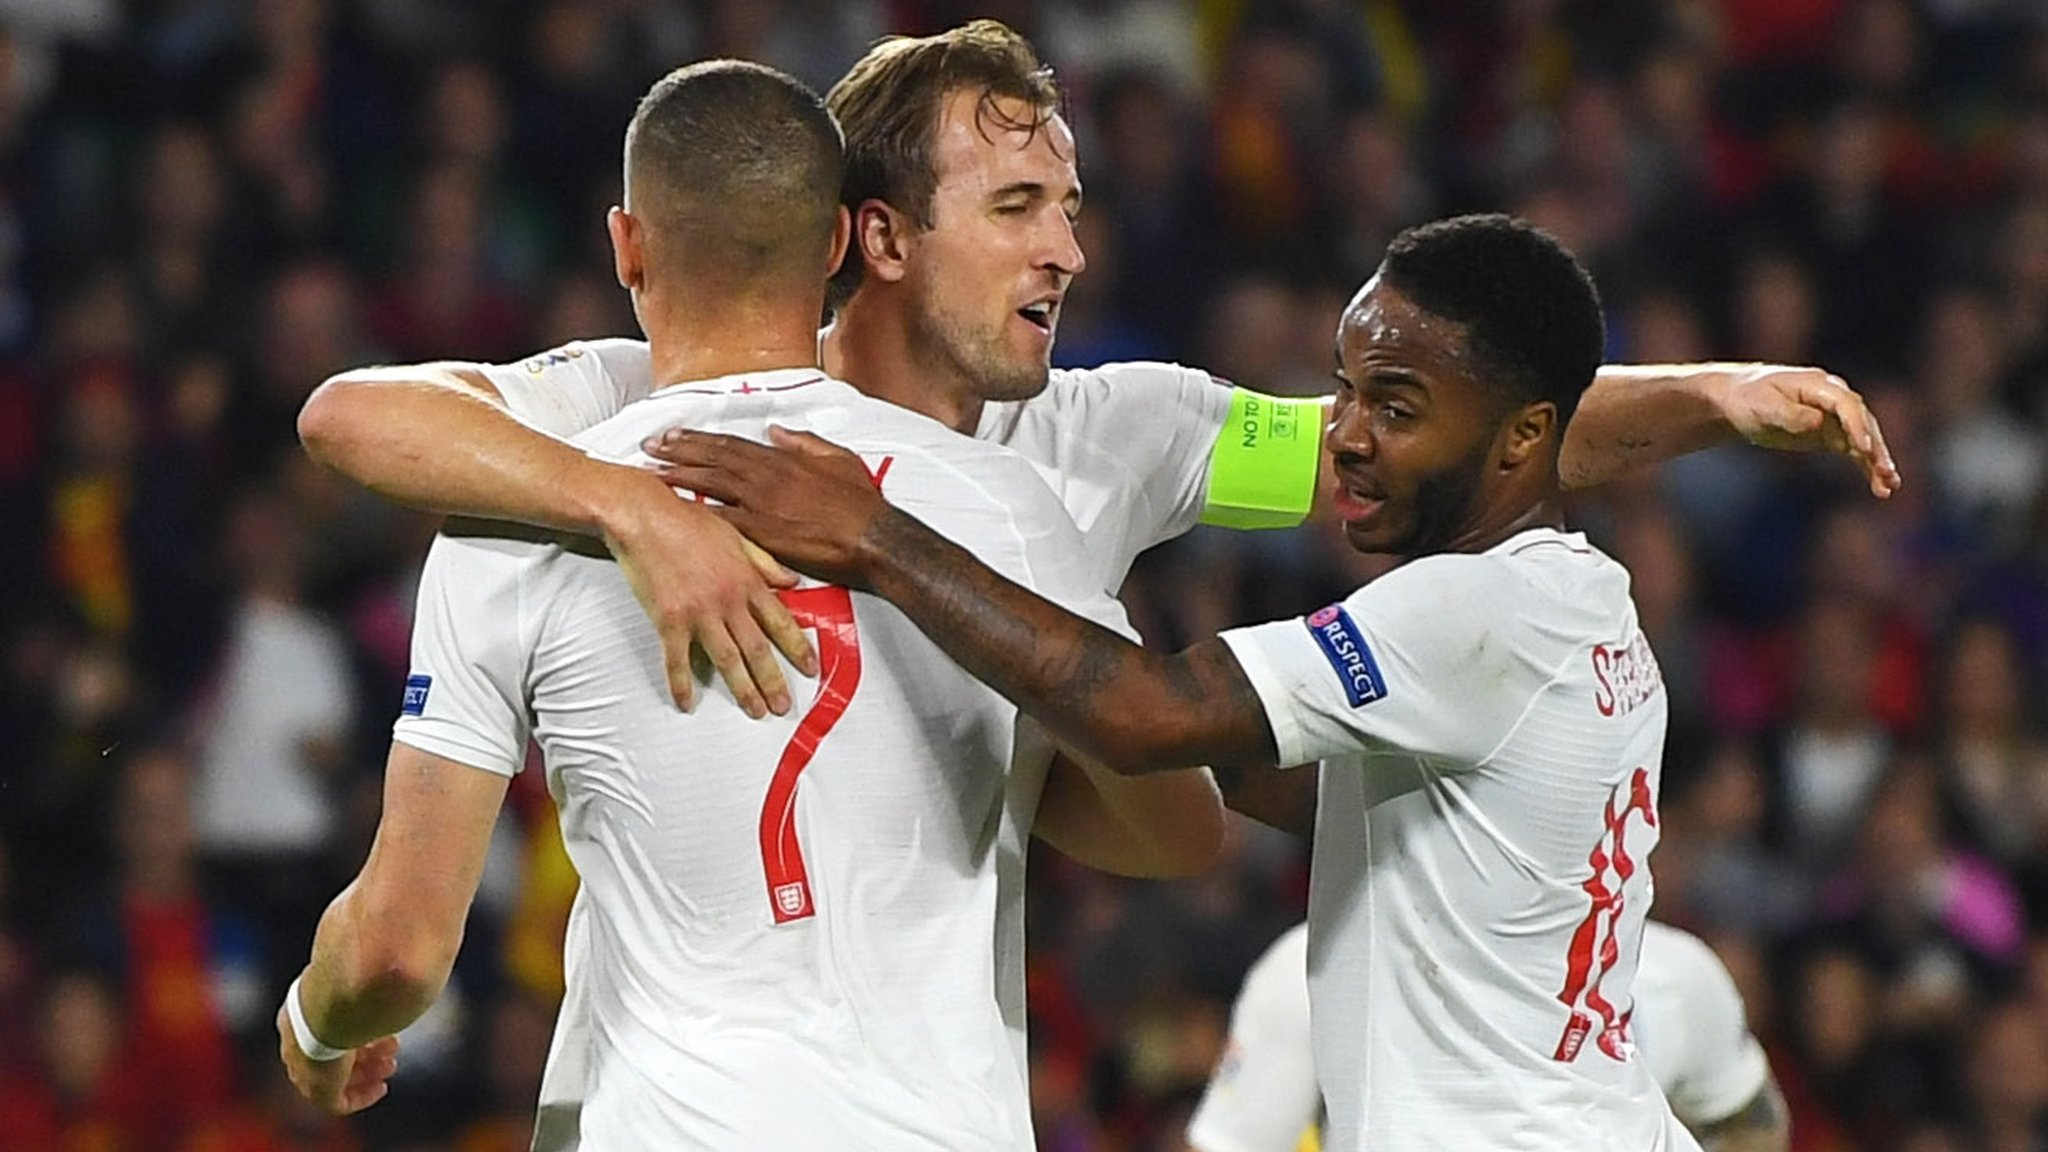 Spain 2-3 England: Raheem Sterling goals inspire stunning victory